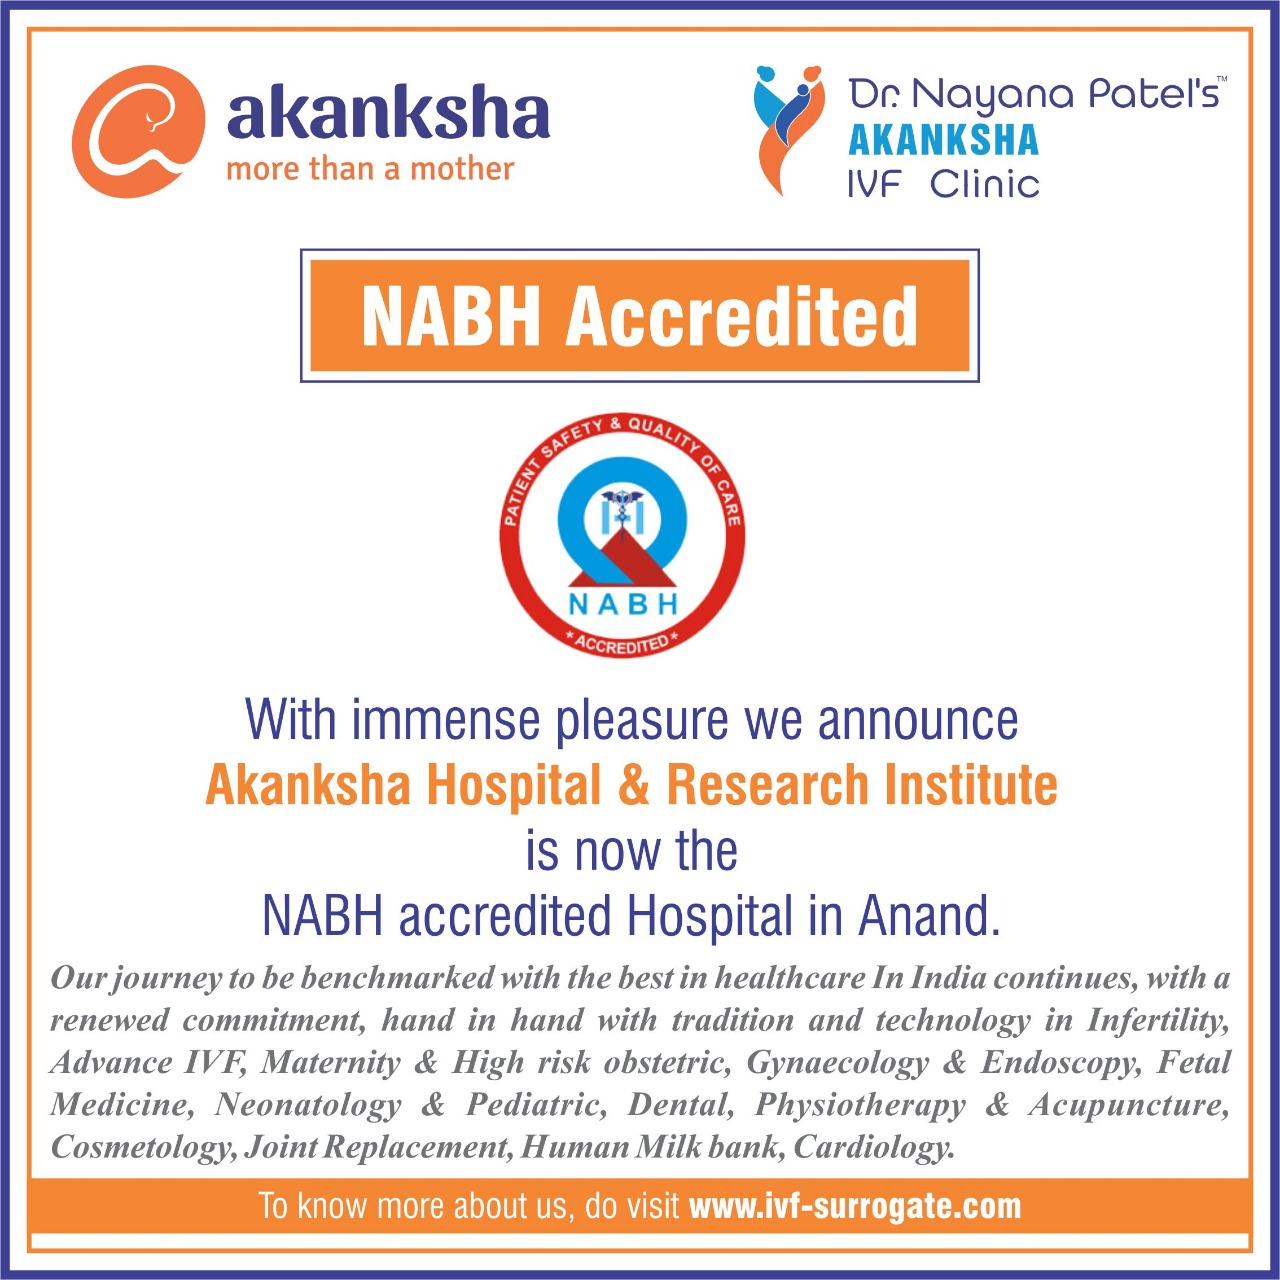 Akanksha Hospital & Research Institute is now the NABH accrediated Hospital in Anand